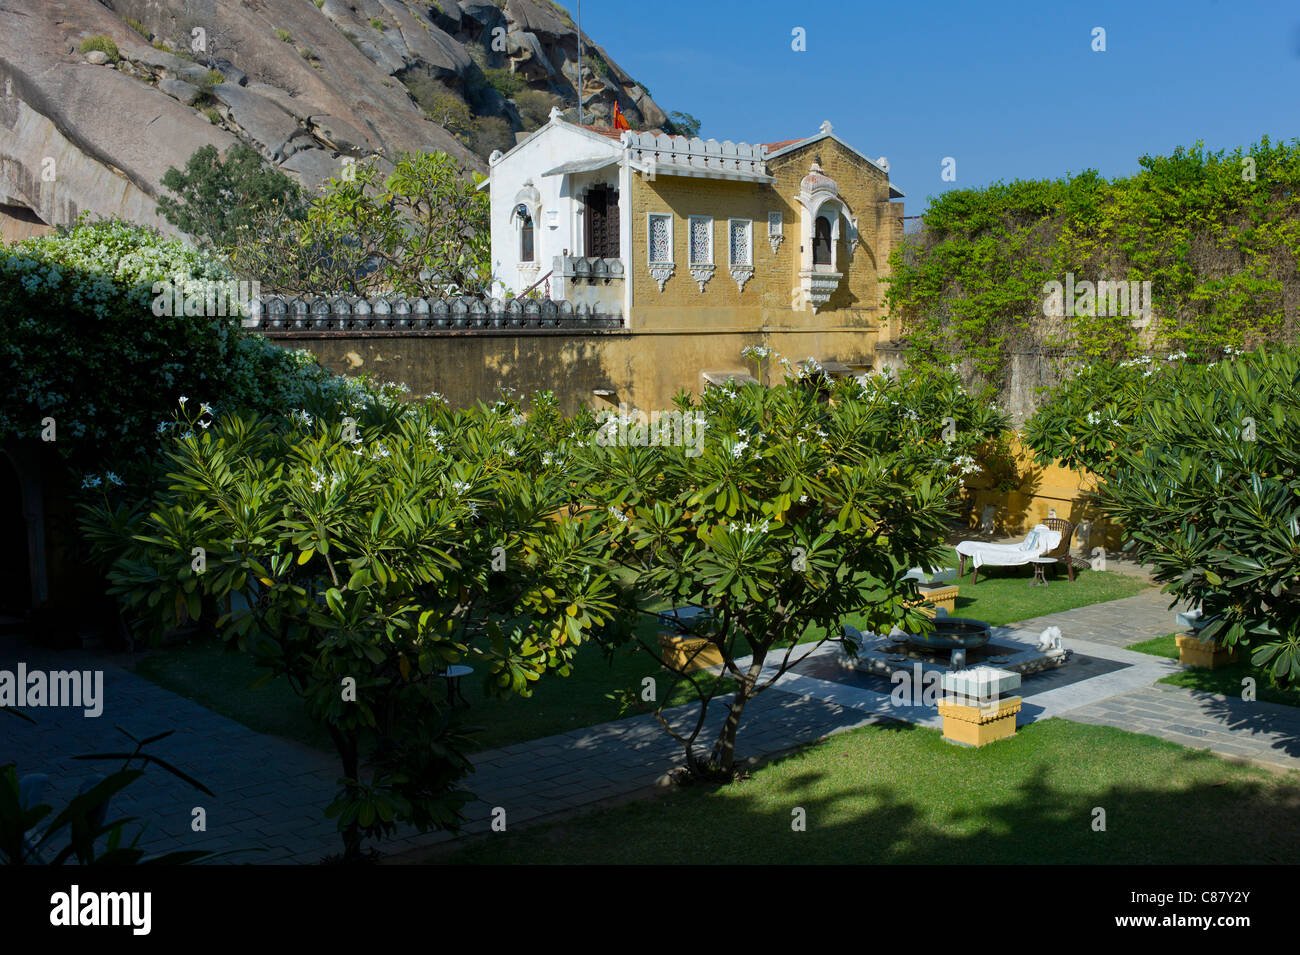 Rawla Narlai, 17th Century merchant's house now a luxury heritage hotel in Narlai, Rajasthan, Northern India - Stock Image